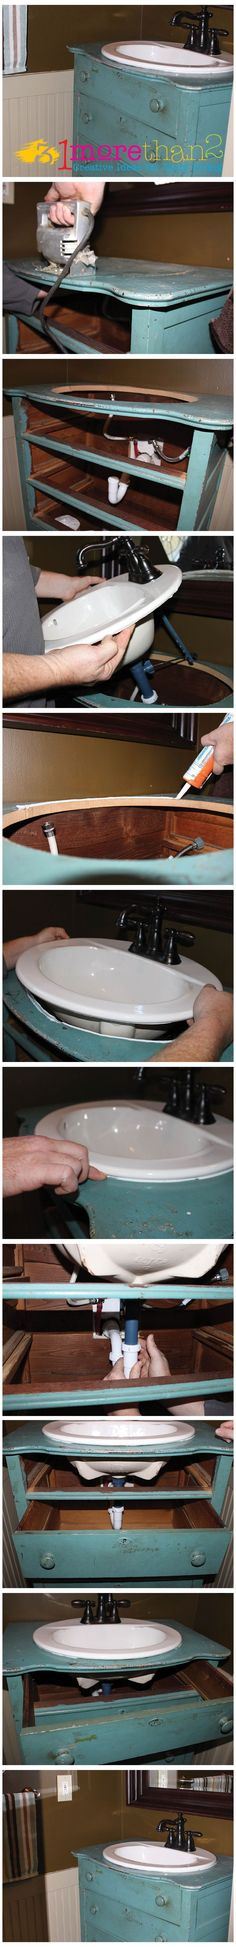 DIY Sink in Old Dresser...We may have to do this in our guest bathroom!